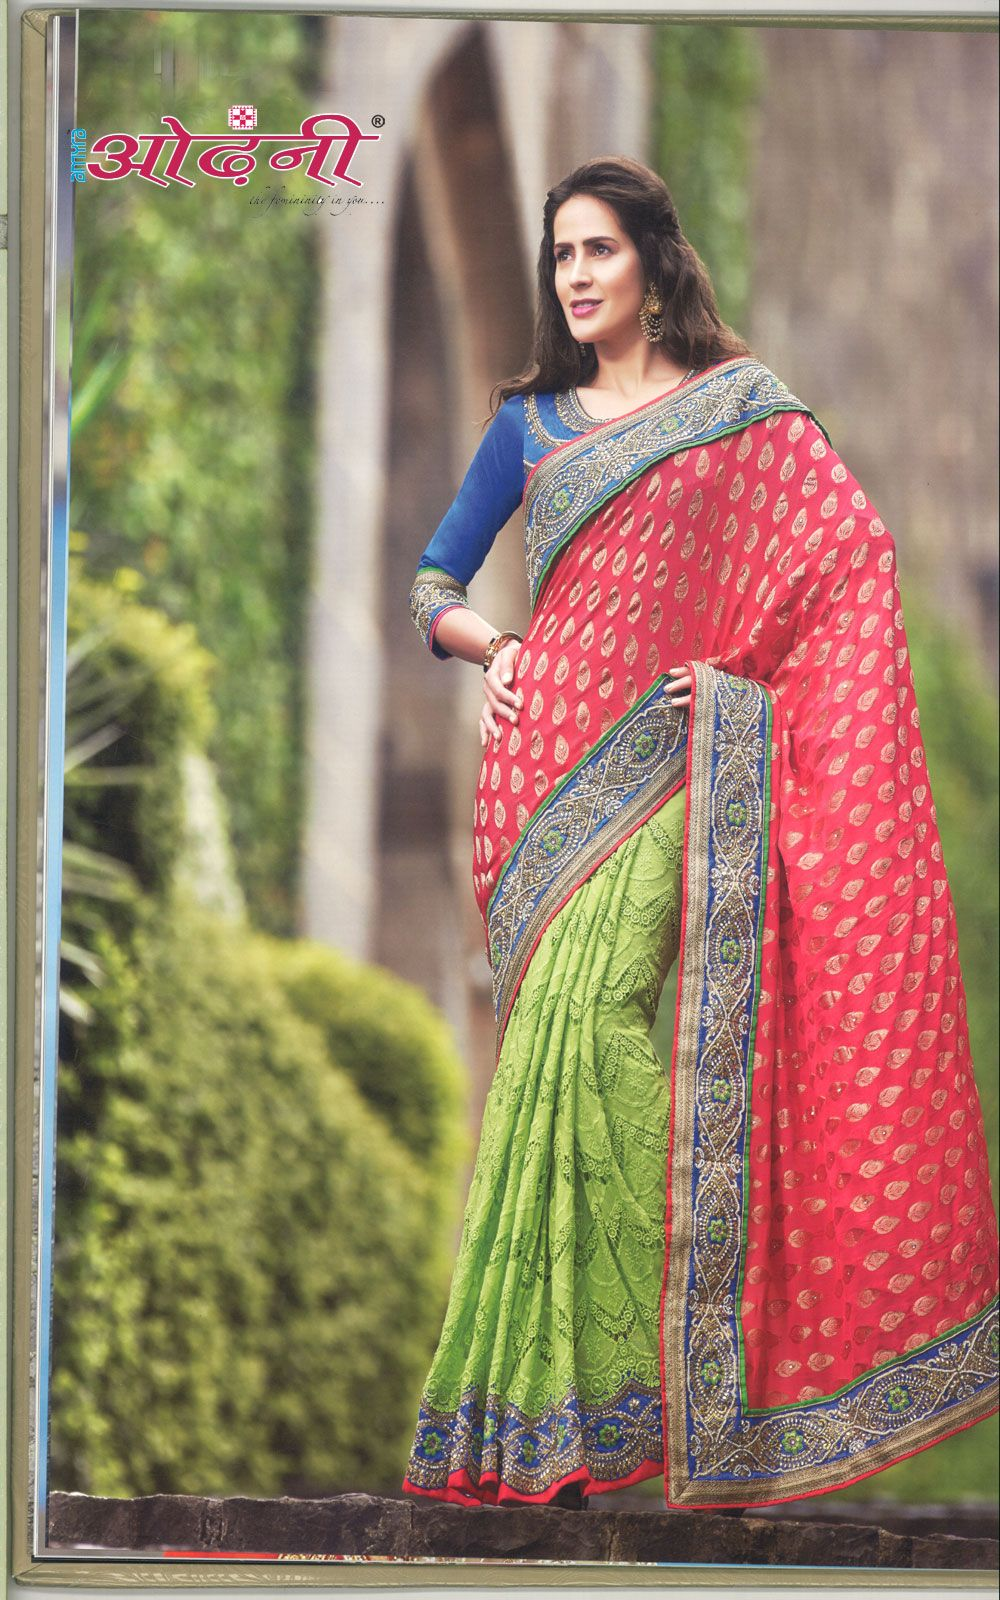 Net saree images this catalouge is comming soon on odhni saree indian trendy